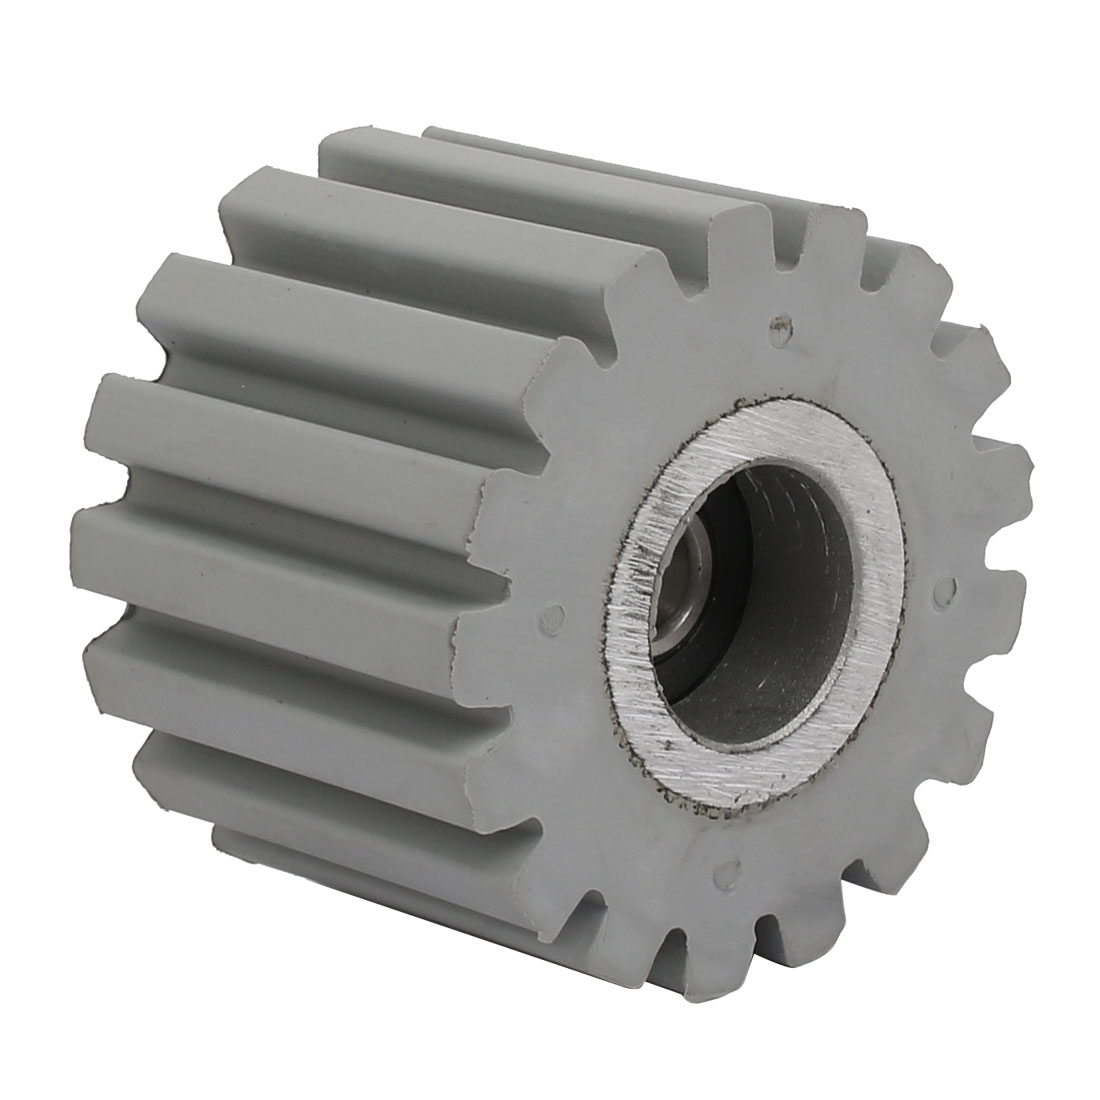 53mmx8mmx40mm Bearing Steel Rubber Straight Line Pinch Roller Pulley Gray